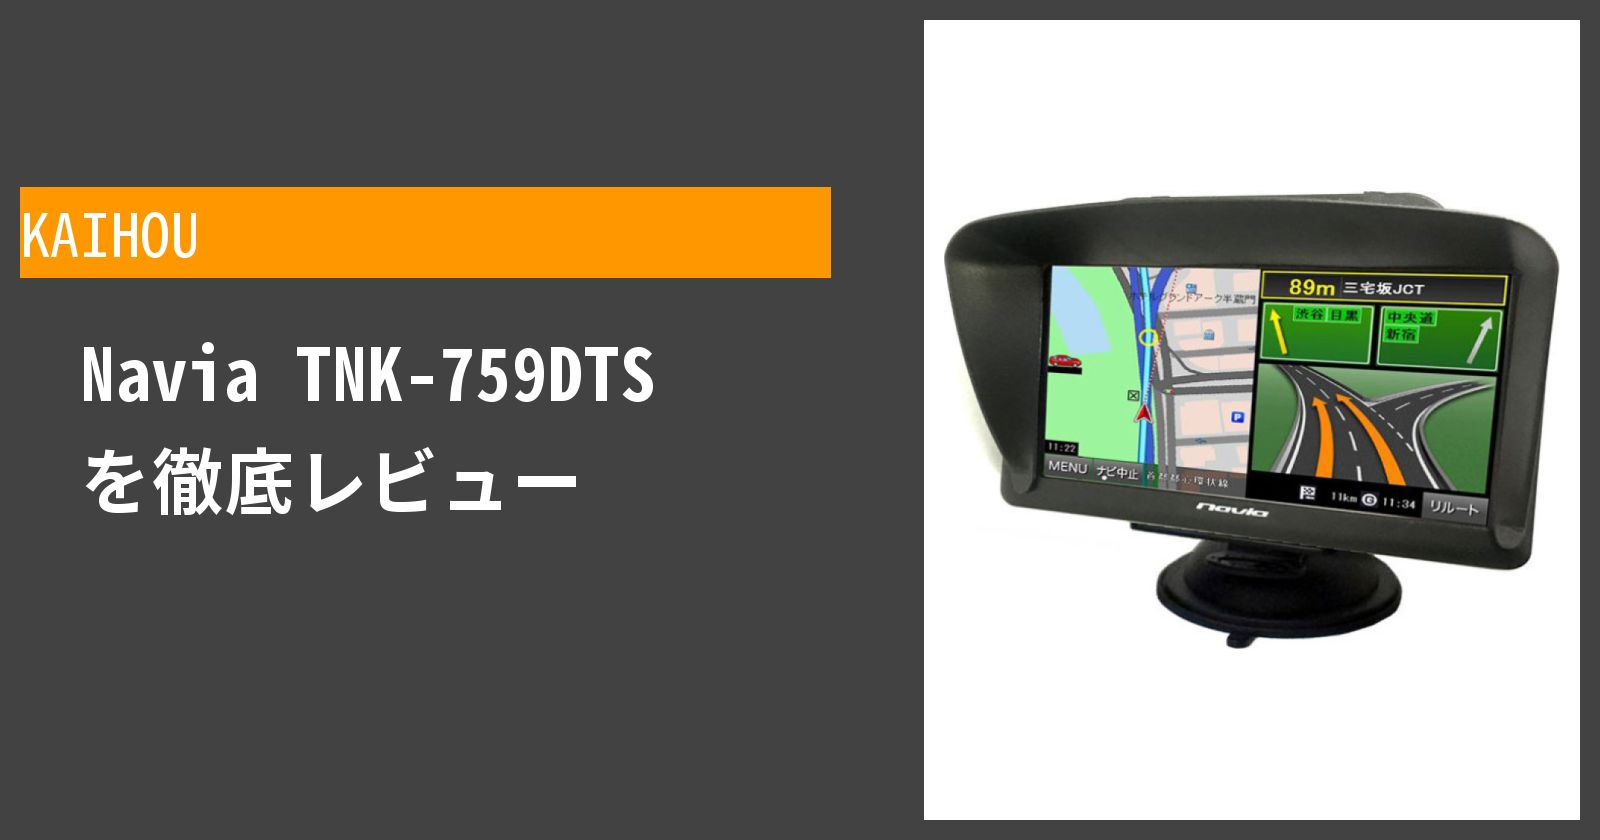 Navia TNK-759DTSを徹底評価